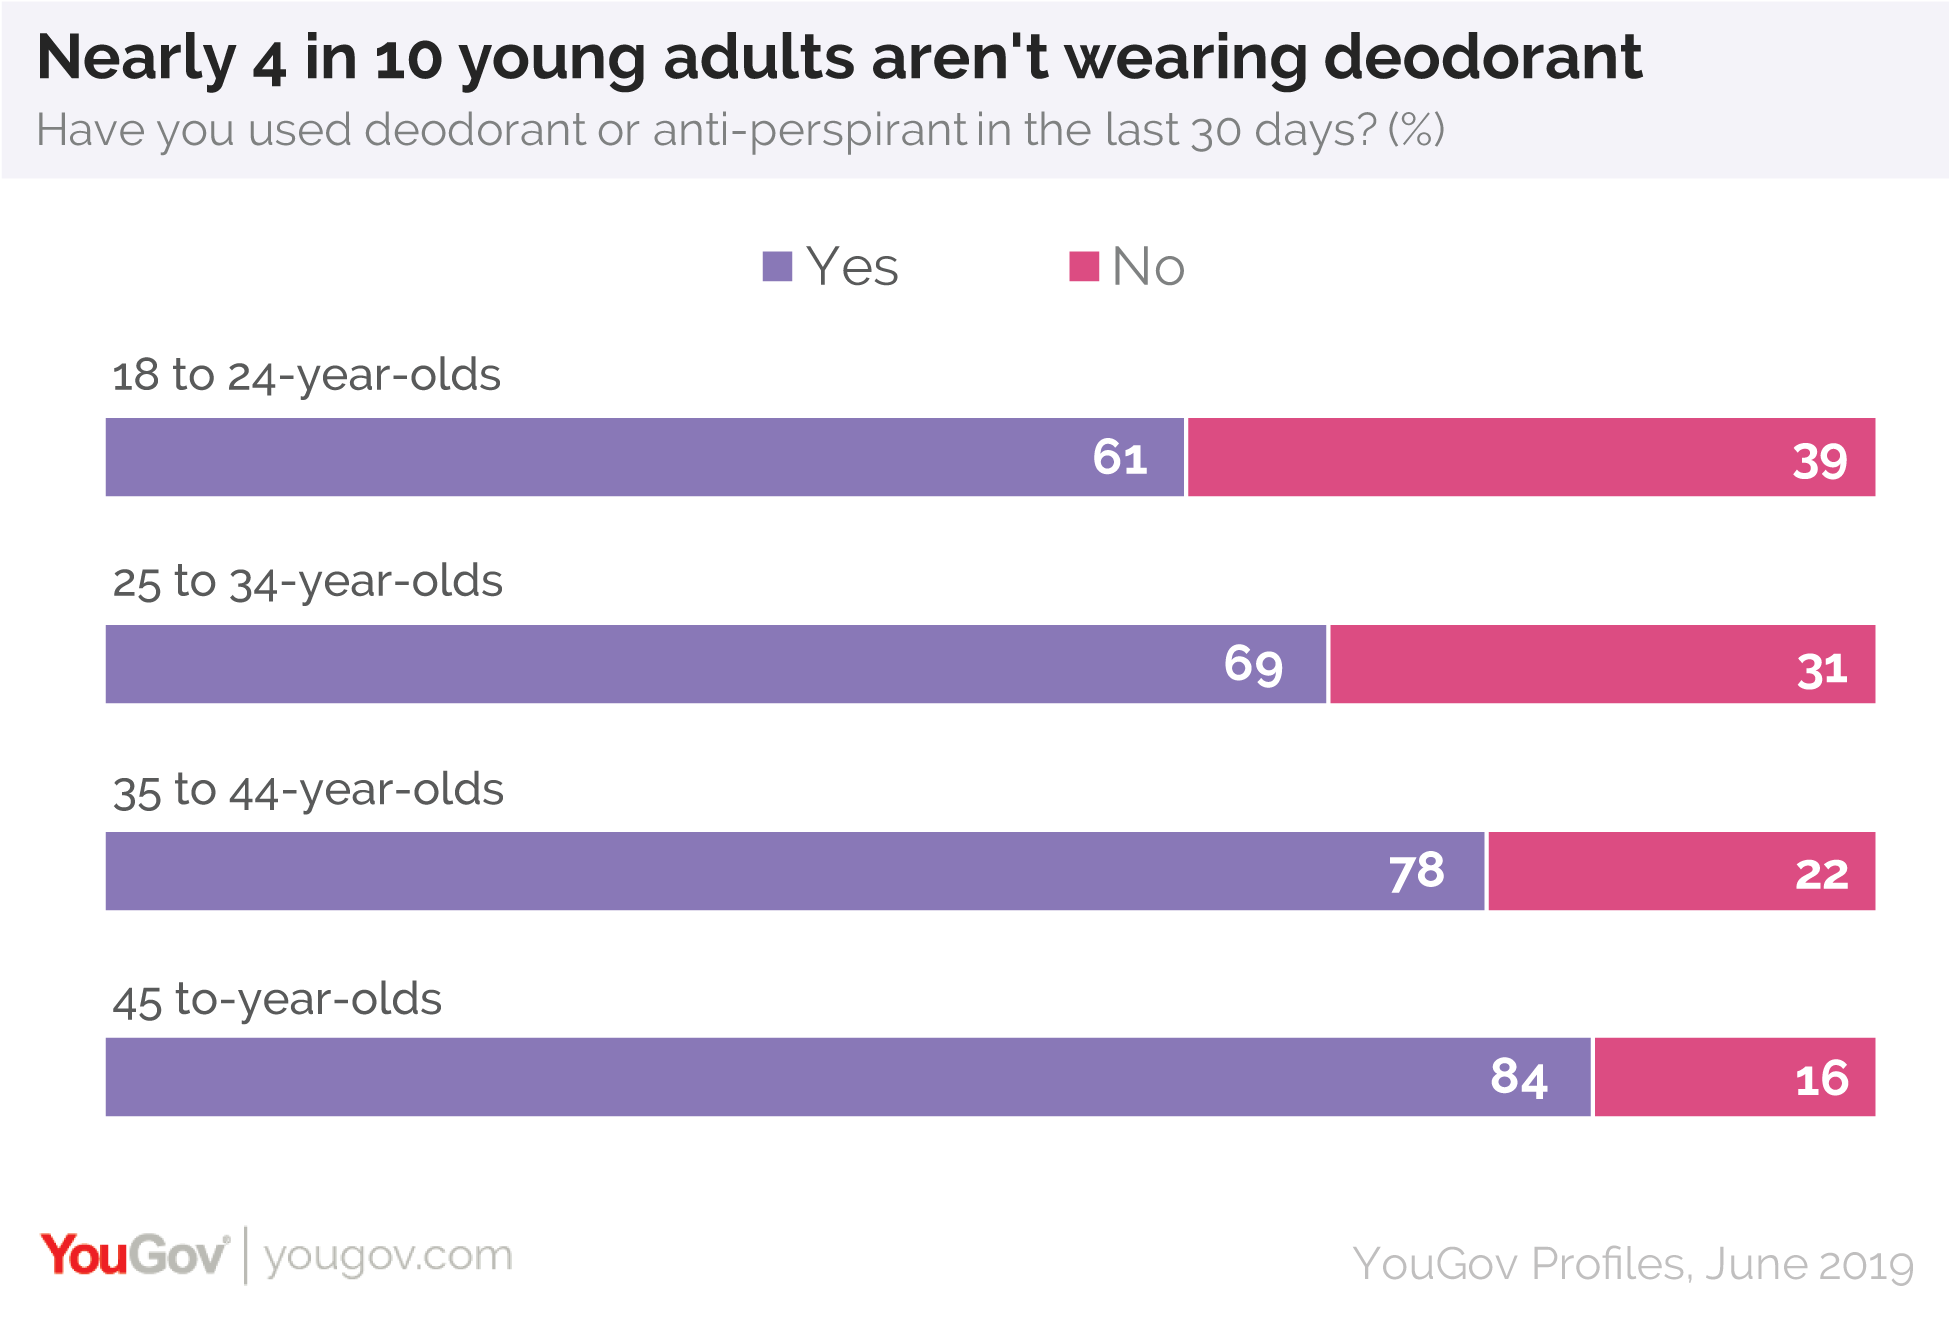 Nearly 4 in 10 young adults are not wearing deodorant